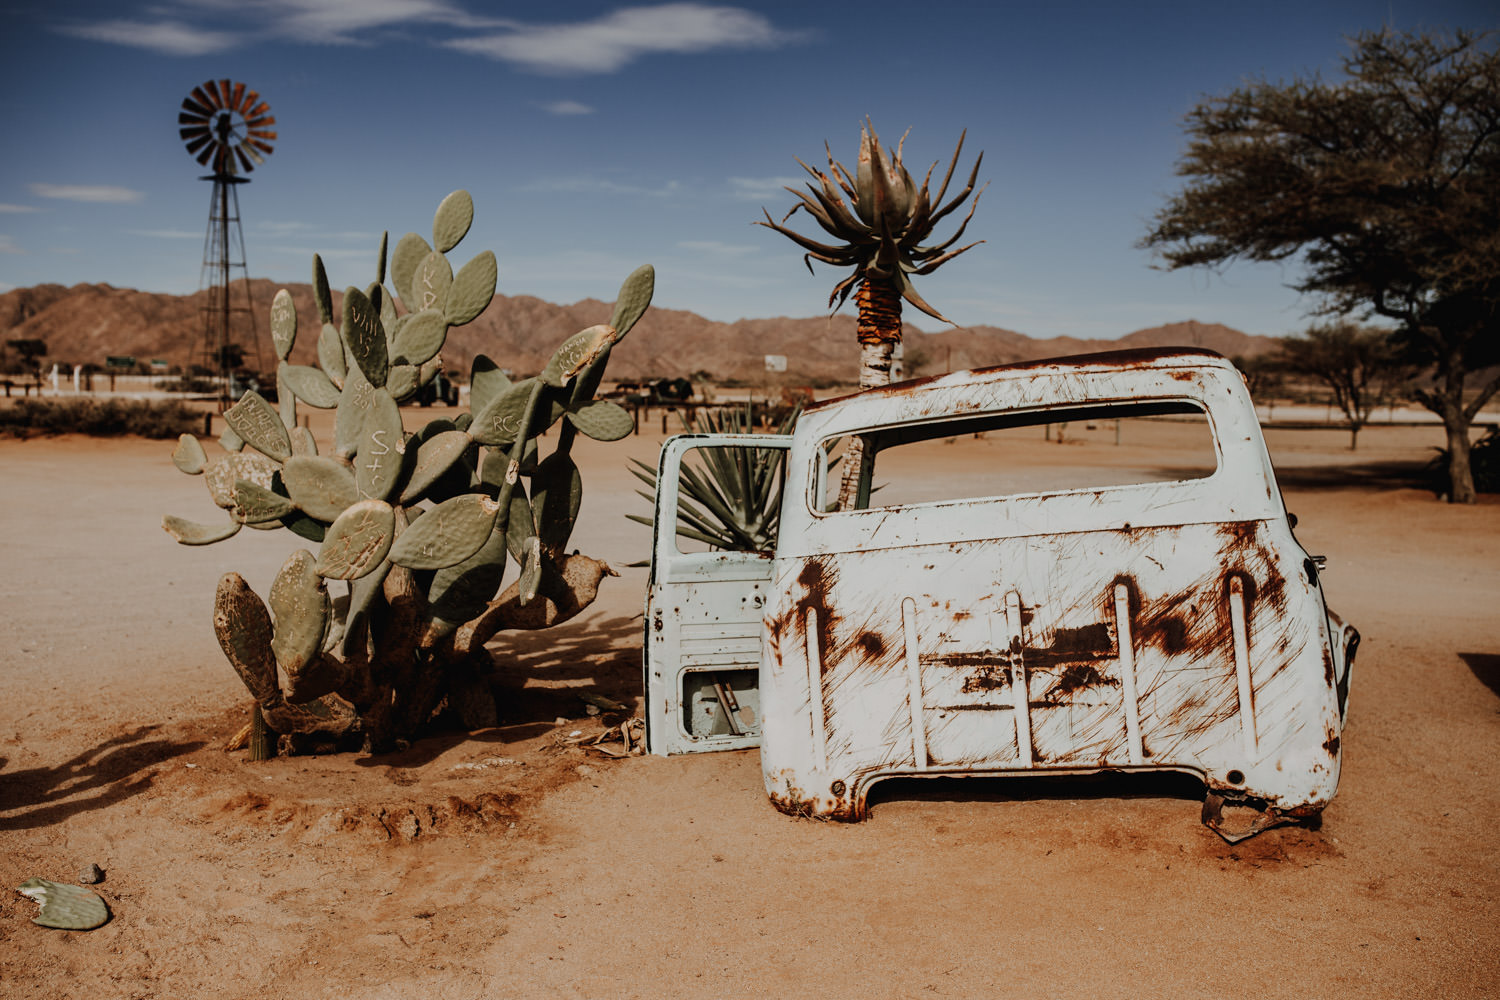 solitaire-namibia-old-car